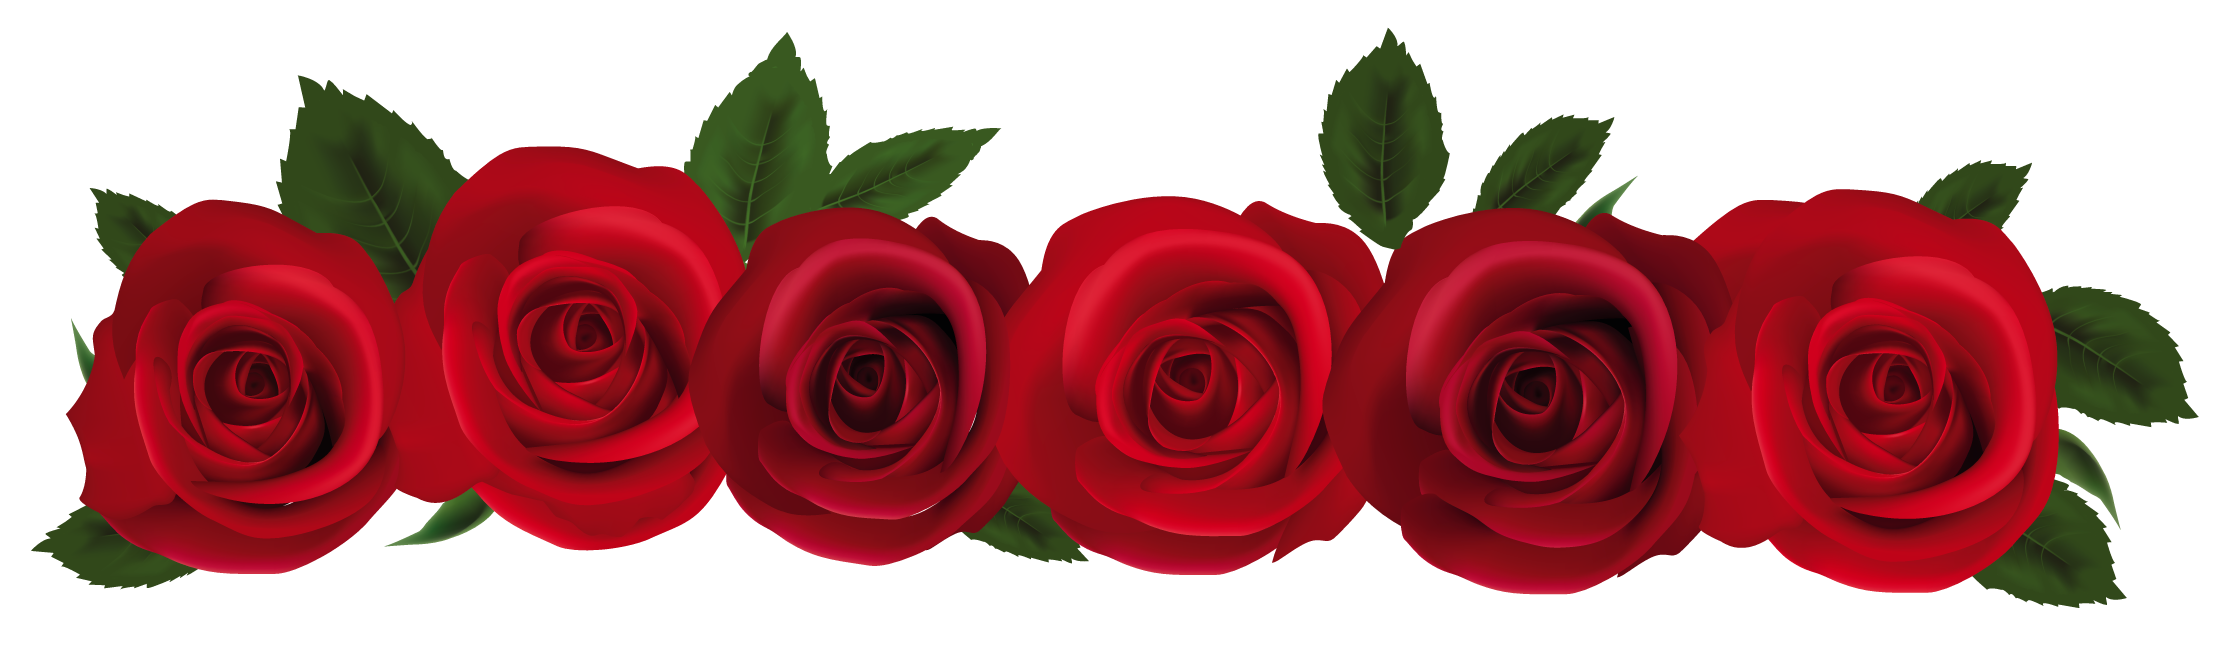 Red Flower clipart rose border #10